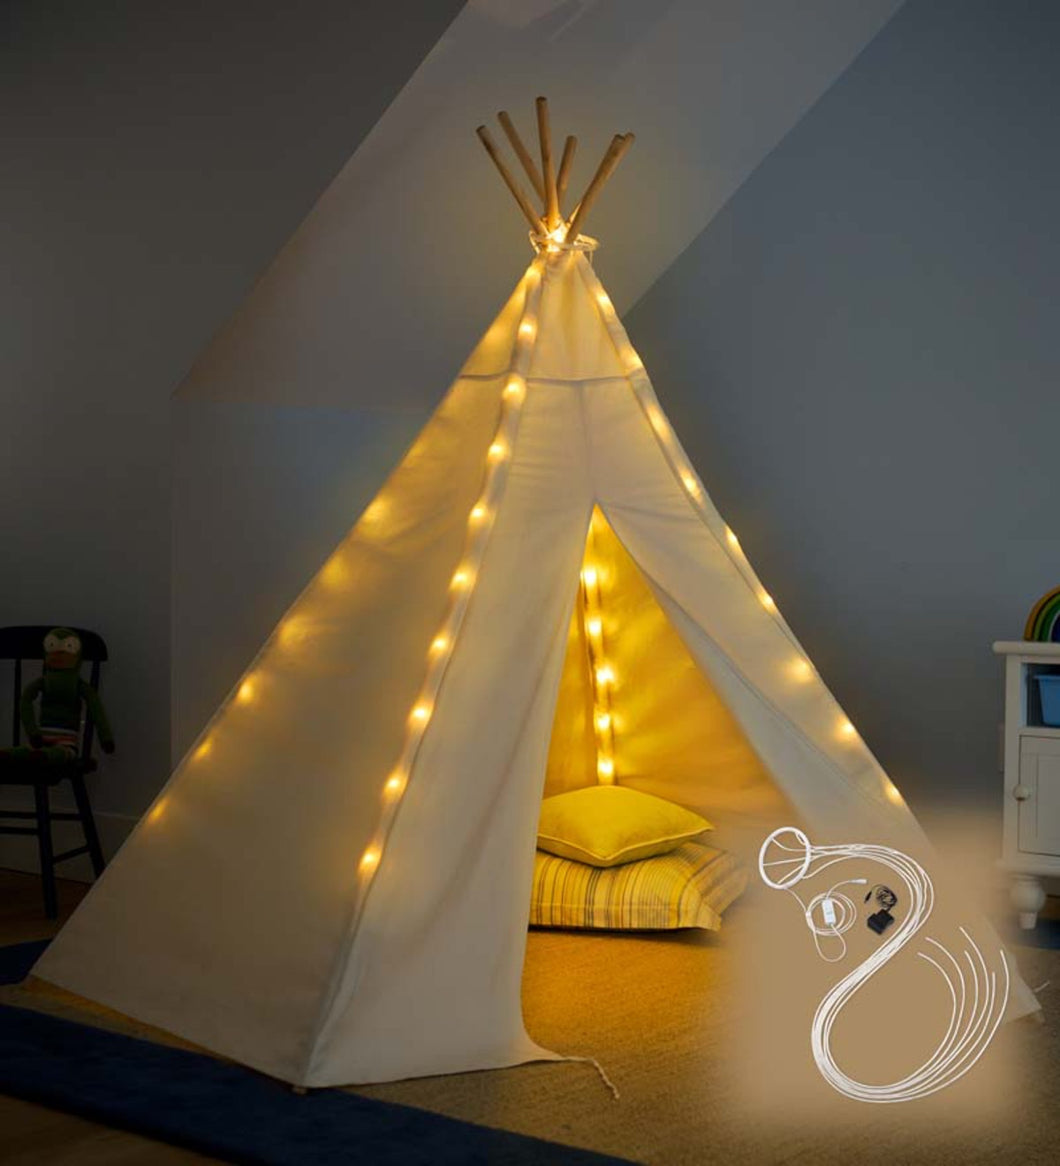 7 Foot TeePee with Lights included